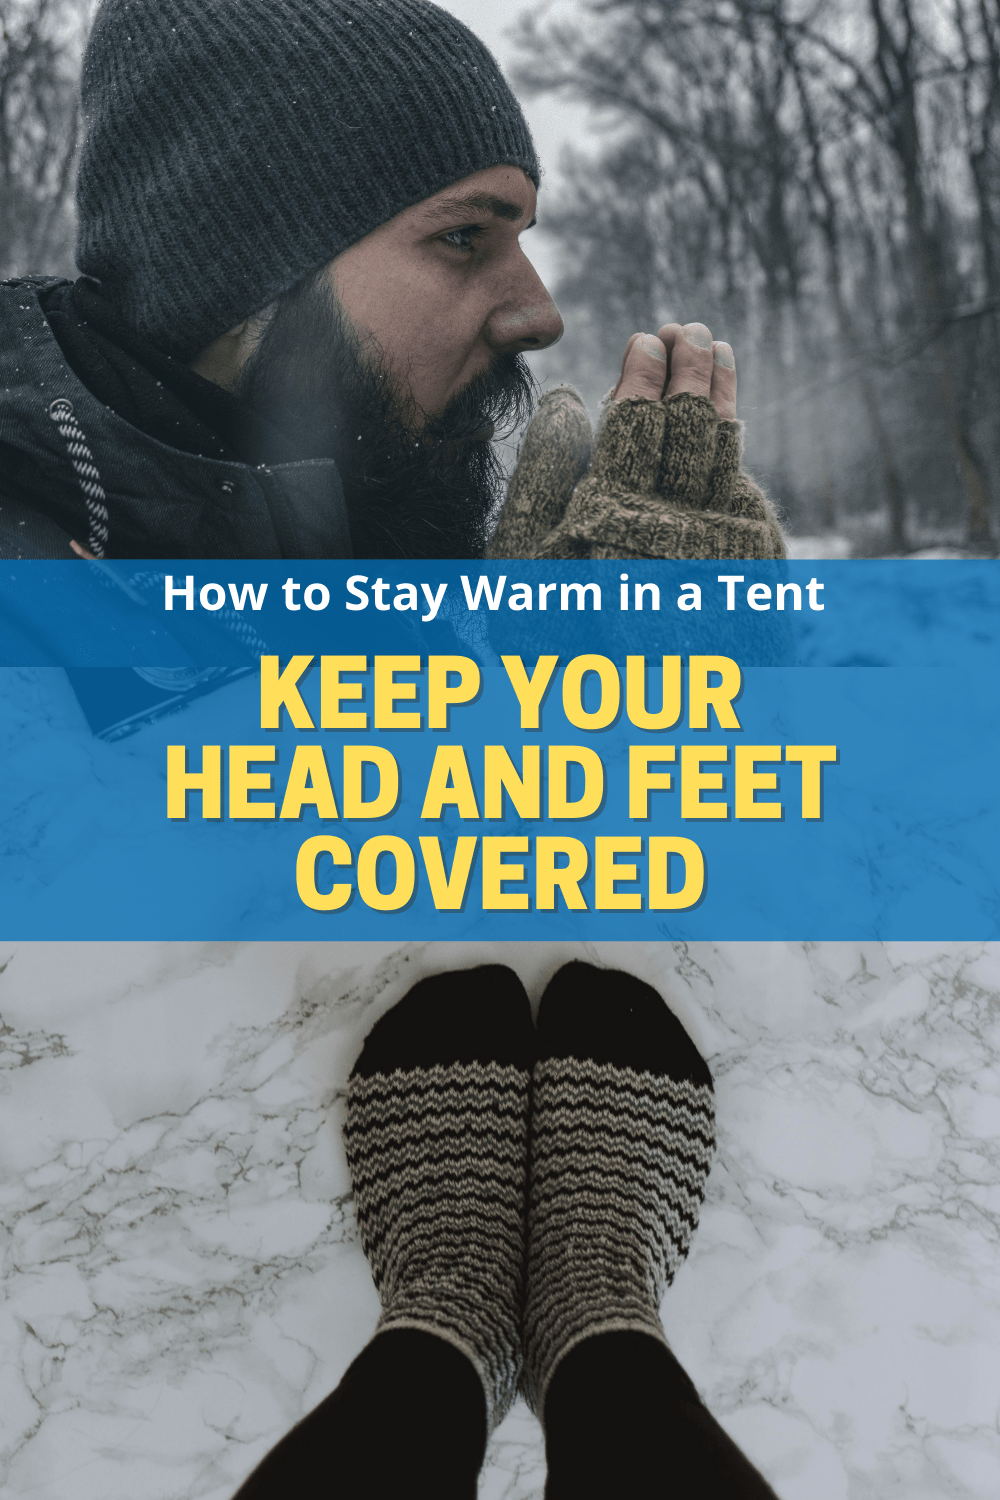 HOW TO STAY WARM IN A TENT (3)